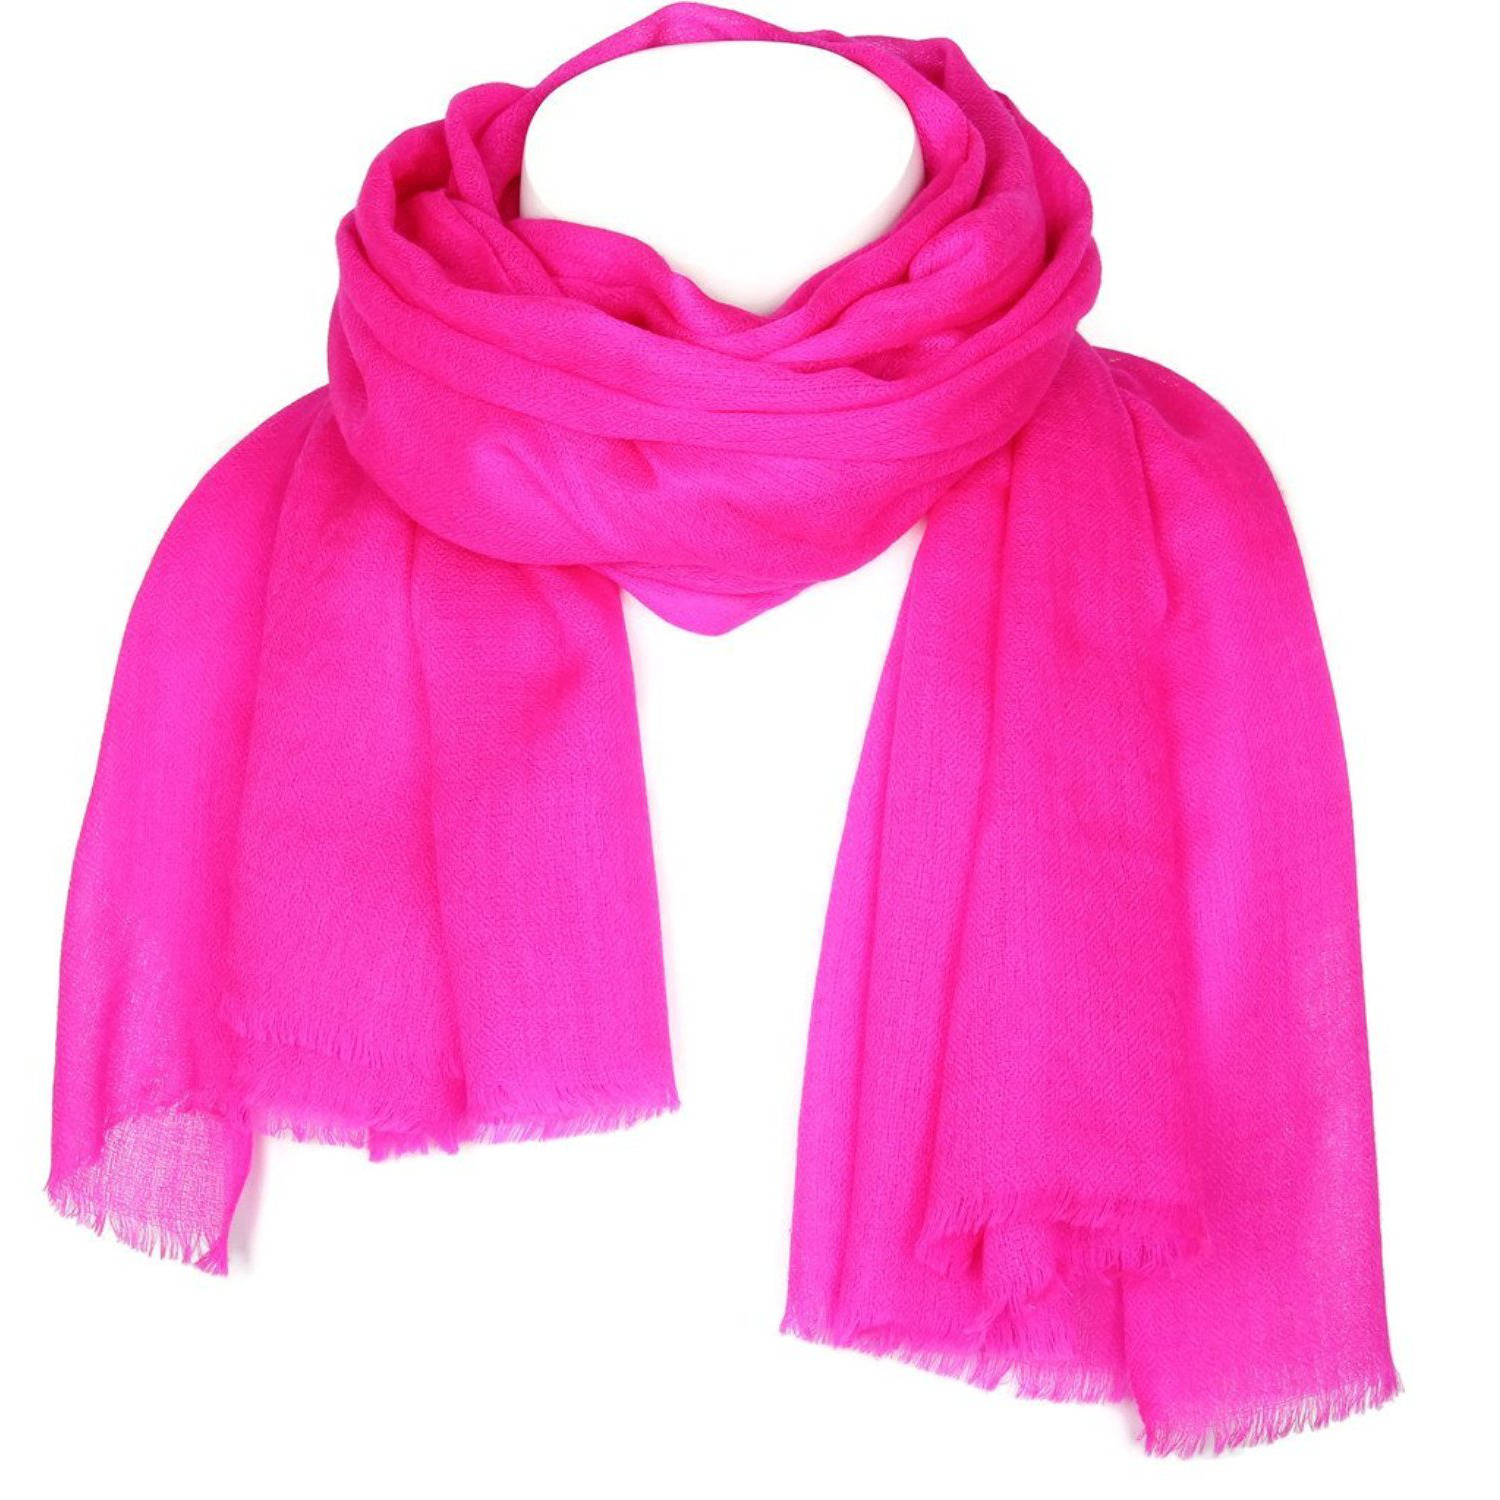 Women's Scarf Ladies Girls Wraps Pashmina Shawls Scarves Stoles Kashmir KASHFAB